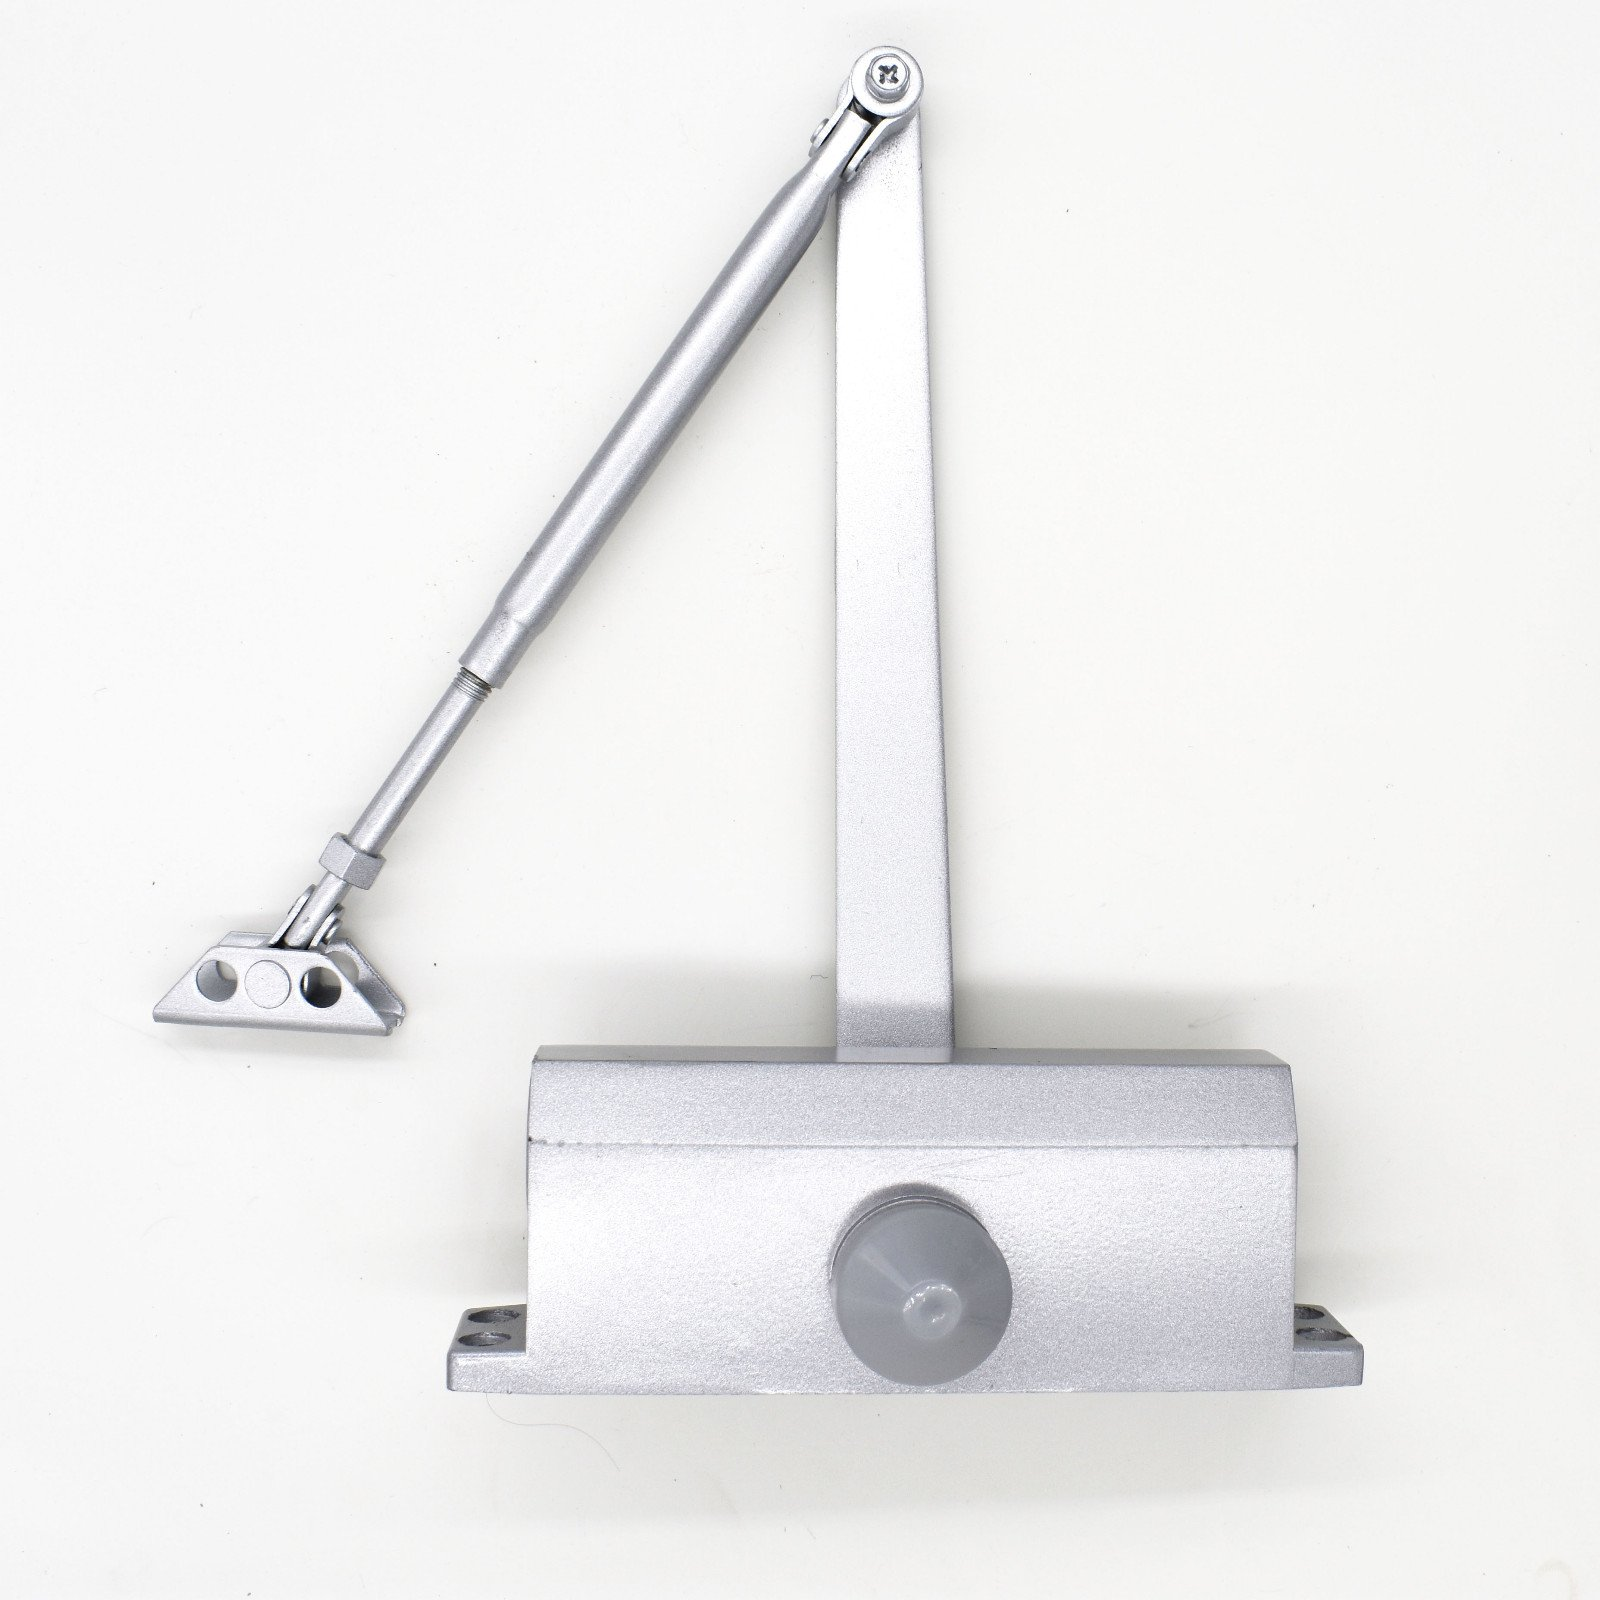 Kerui Furniture Hardware Brand hidden closer automatic door closer closers quadrangle